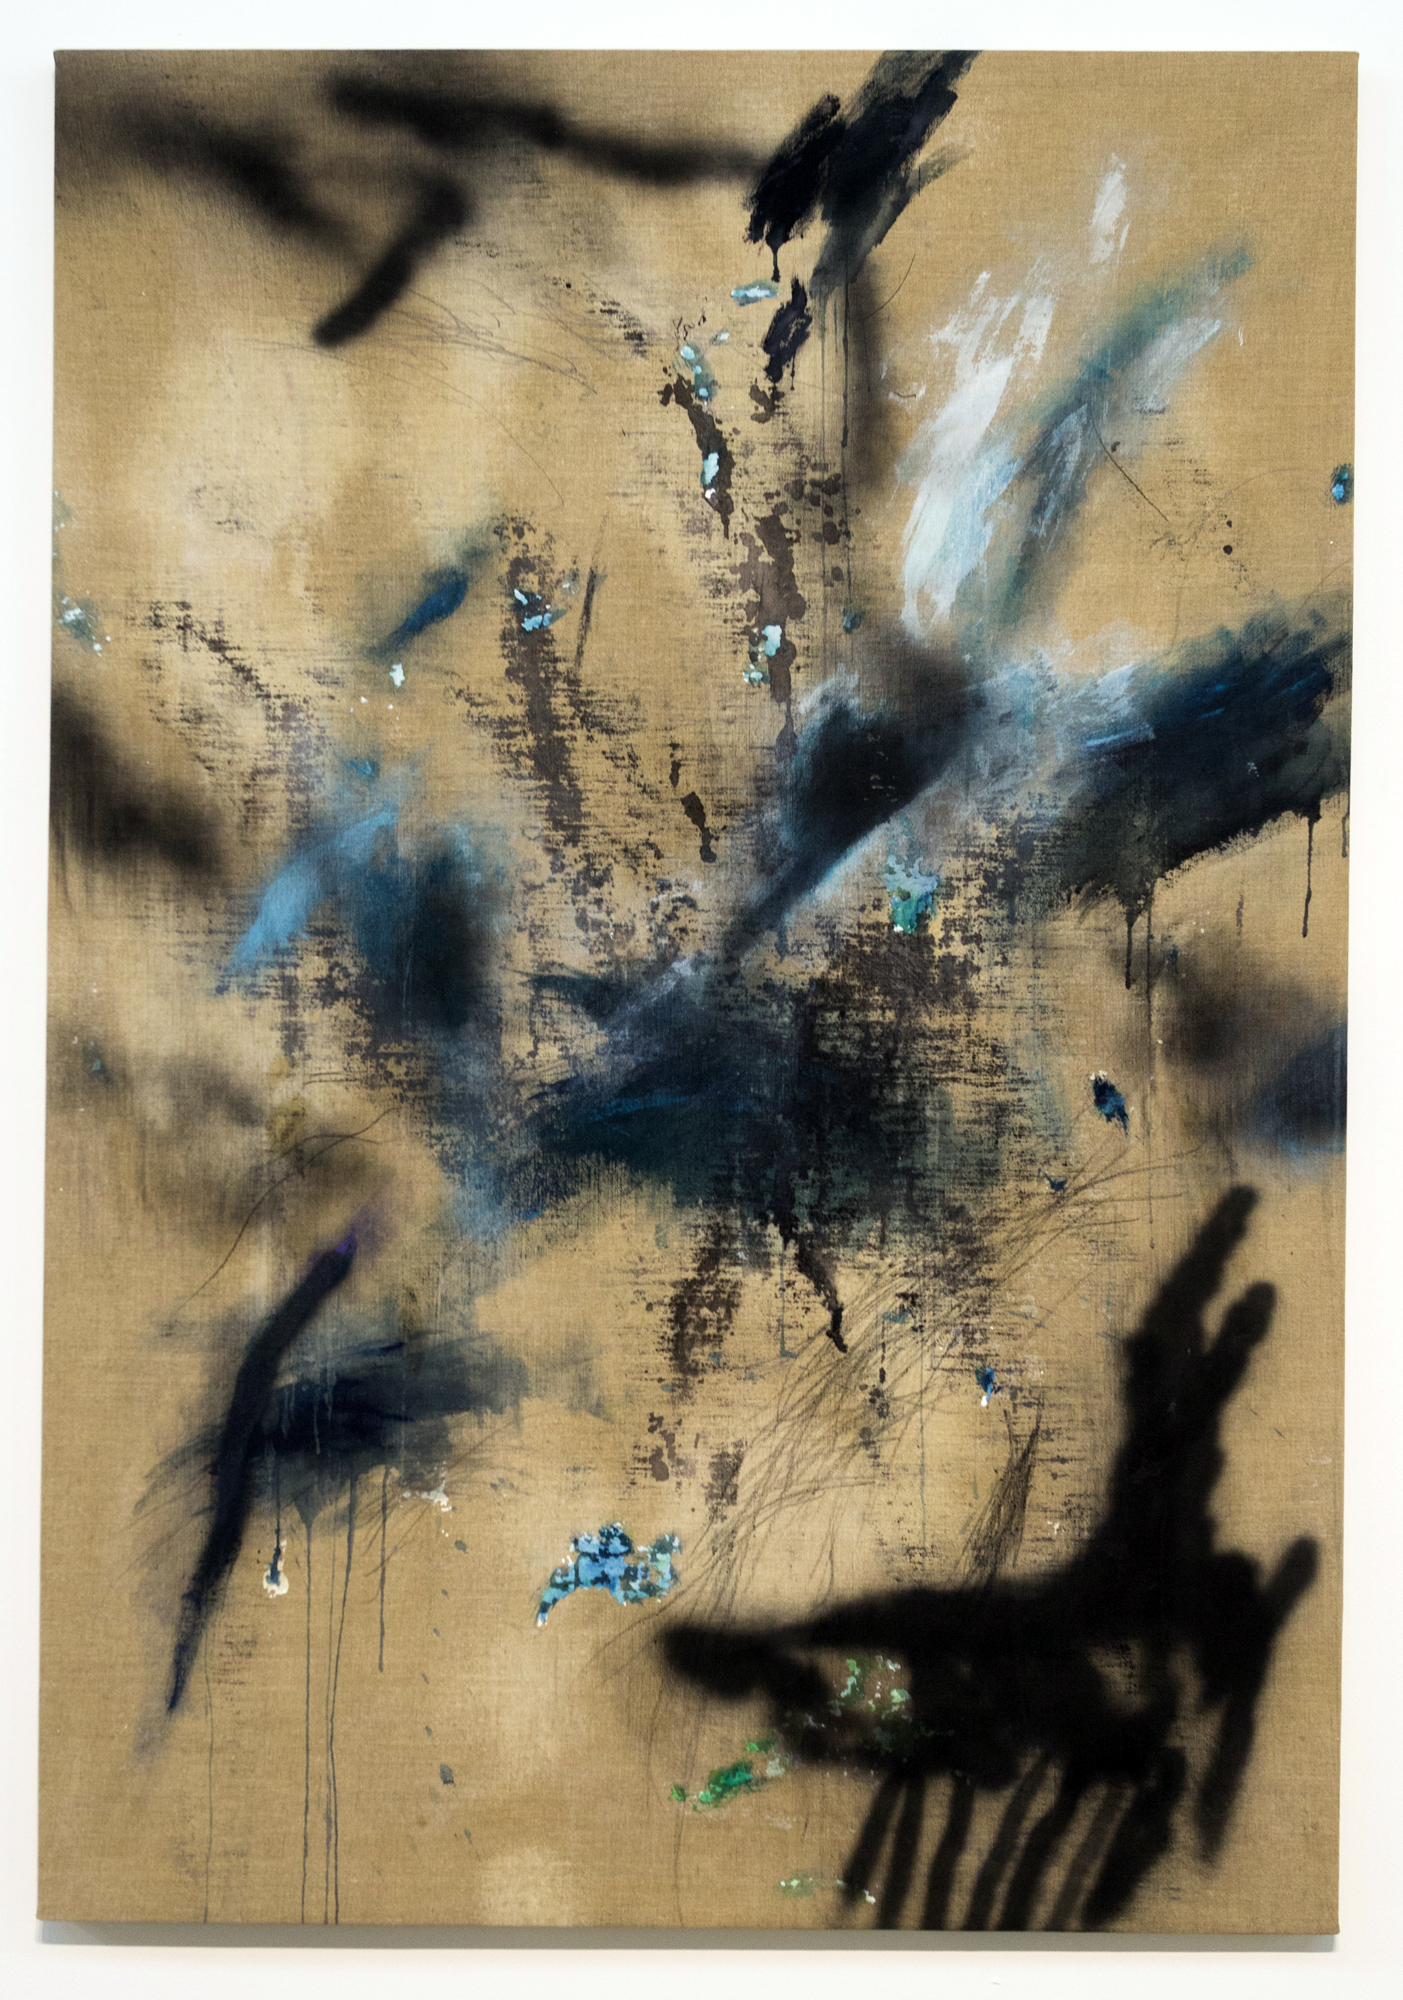 MLSL_07_Ritani  , 2015  Oil, acrylic, lead and spray paint on linen  67 x 46.5 in (170.18 x 118.11 cm)